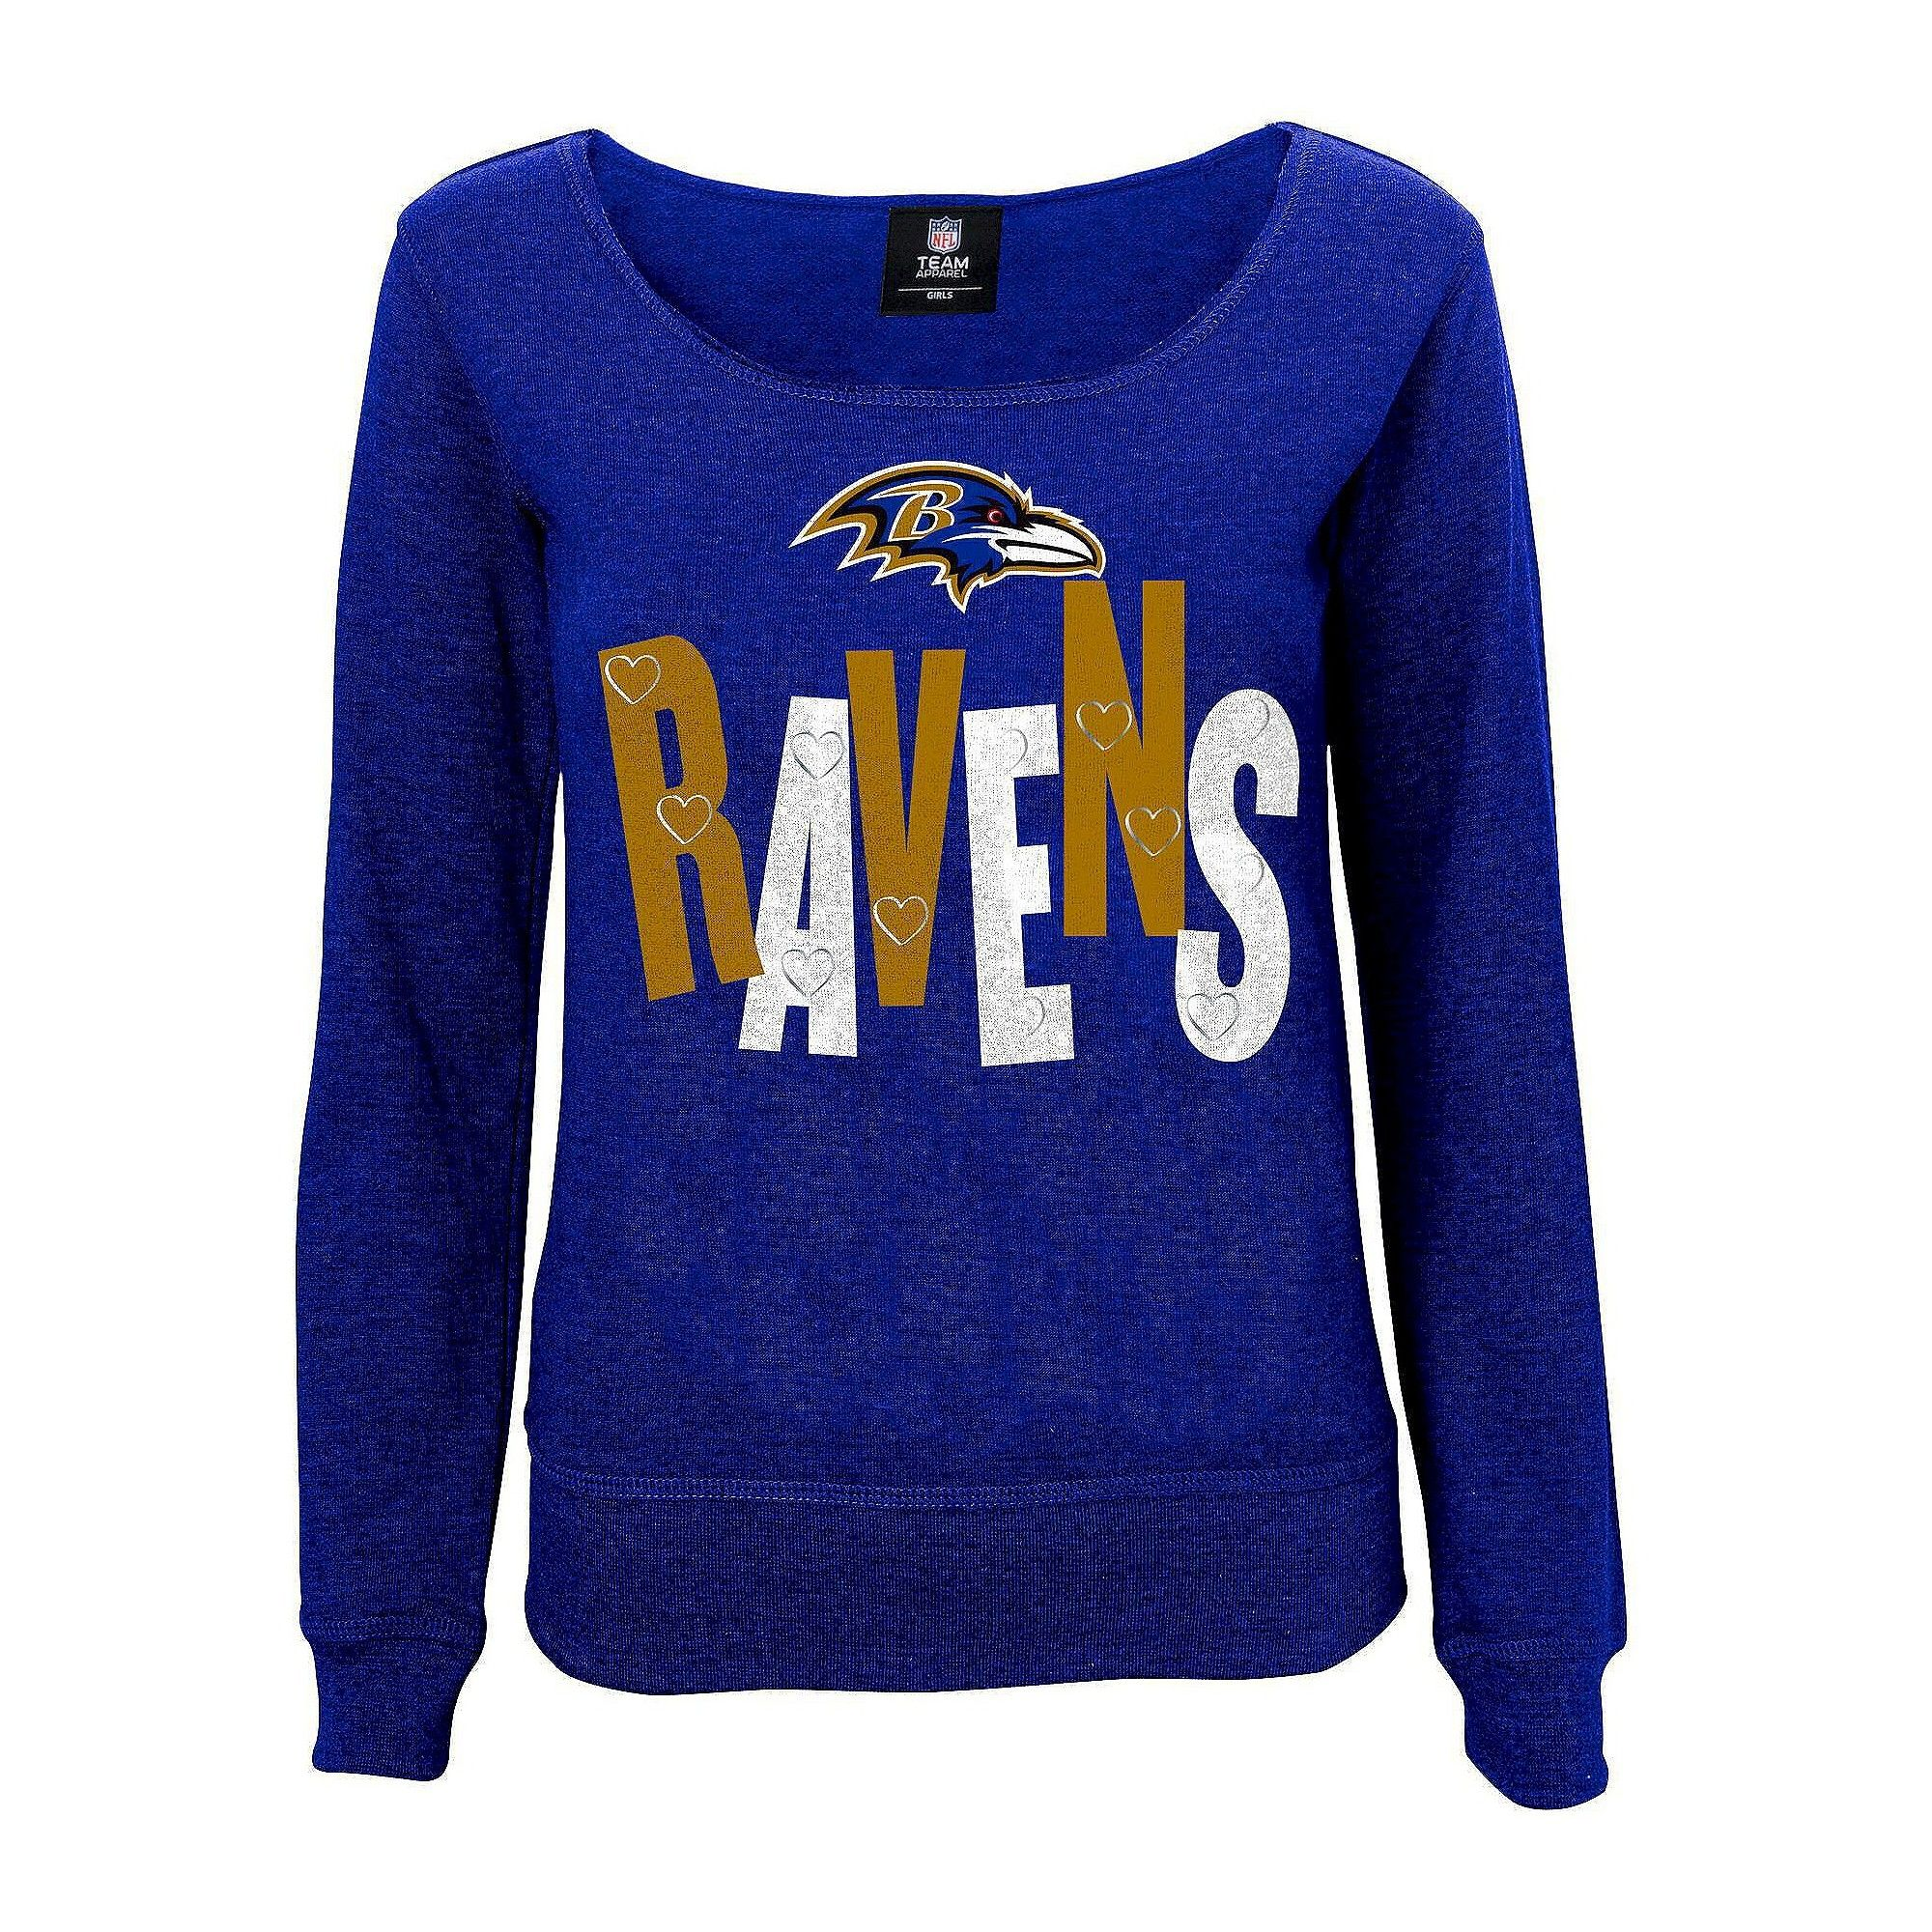 Baltimore Ravens Girls Open Neck Fleece XL 7a2e7b62e